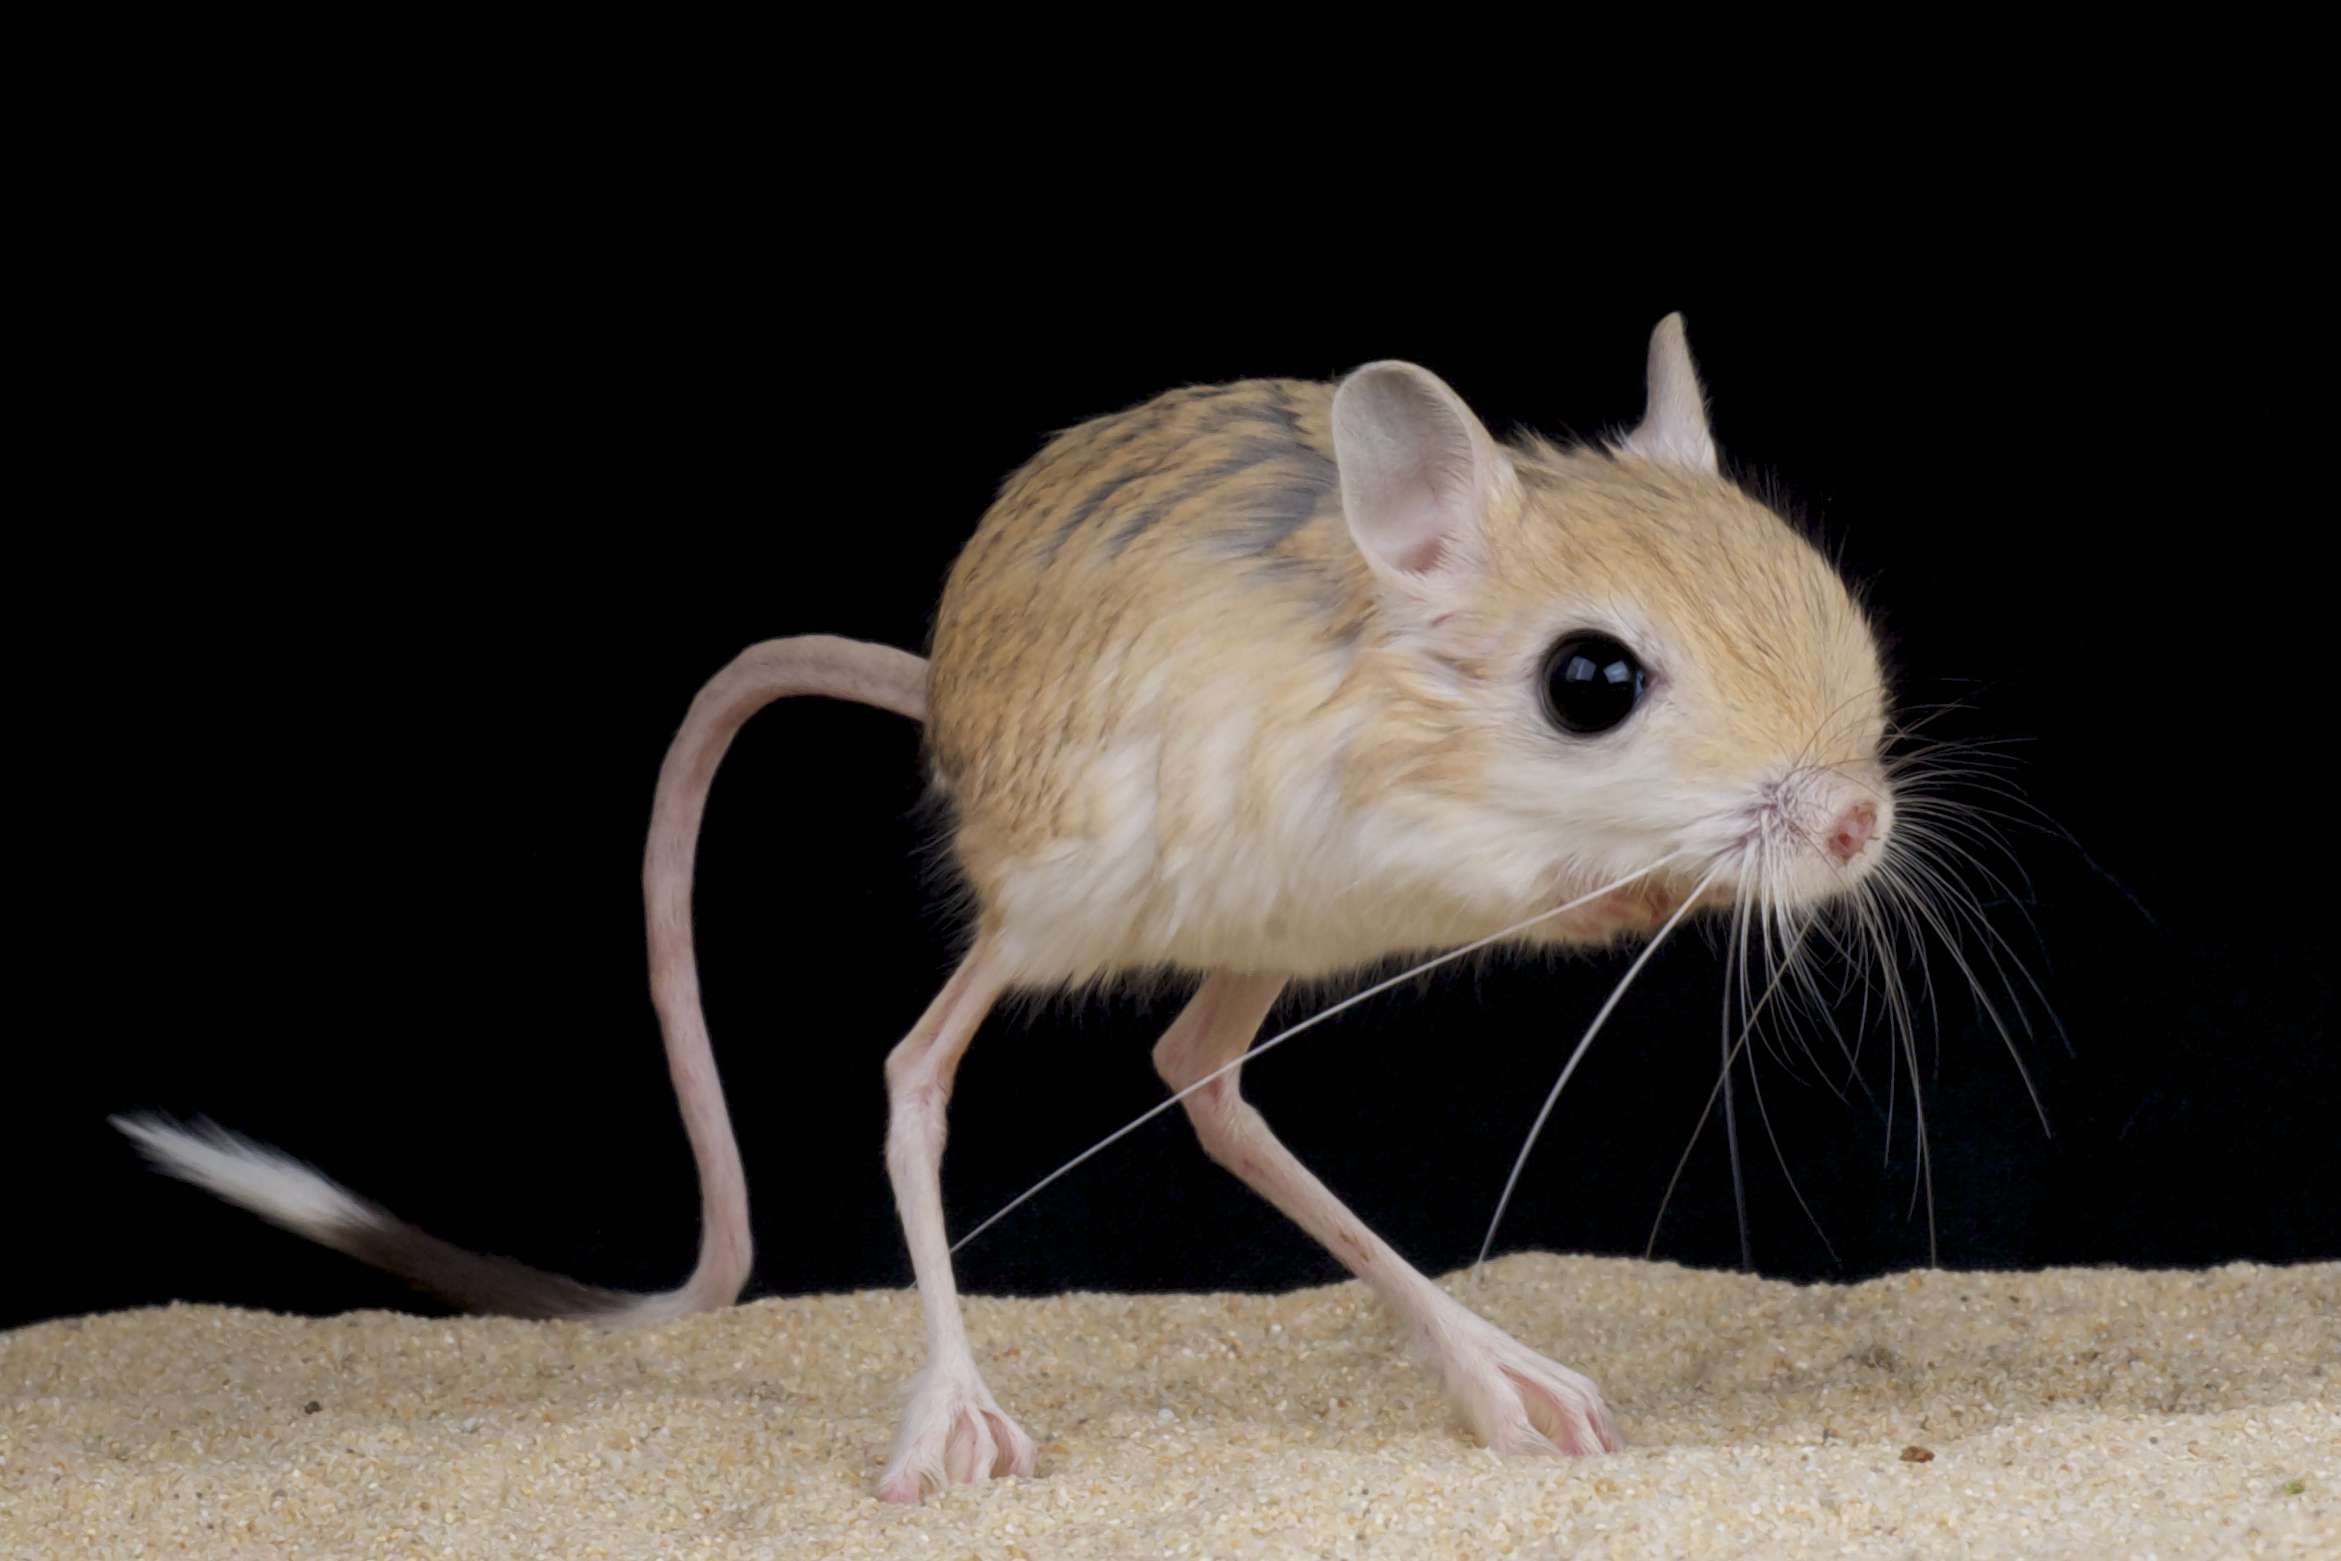 Jerboa, a small steppe-dwelling rodent